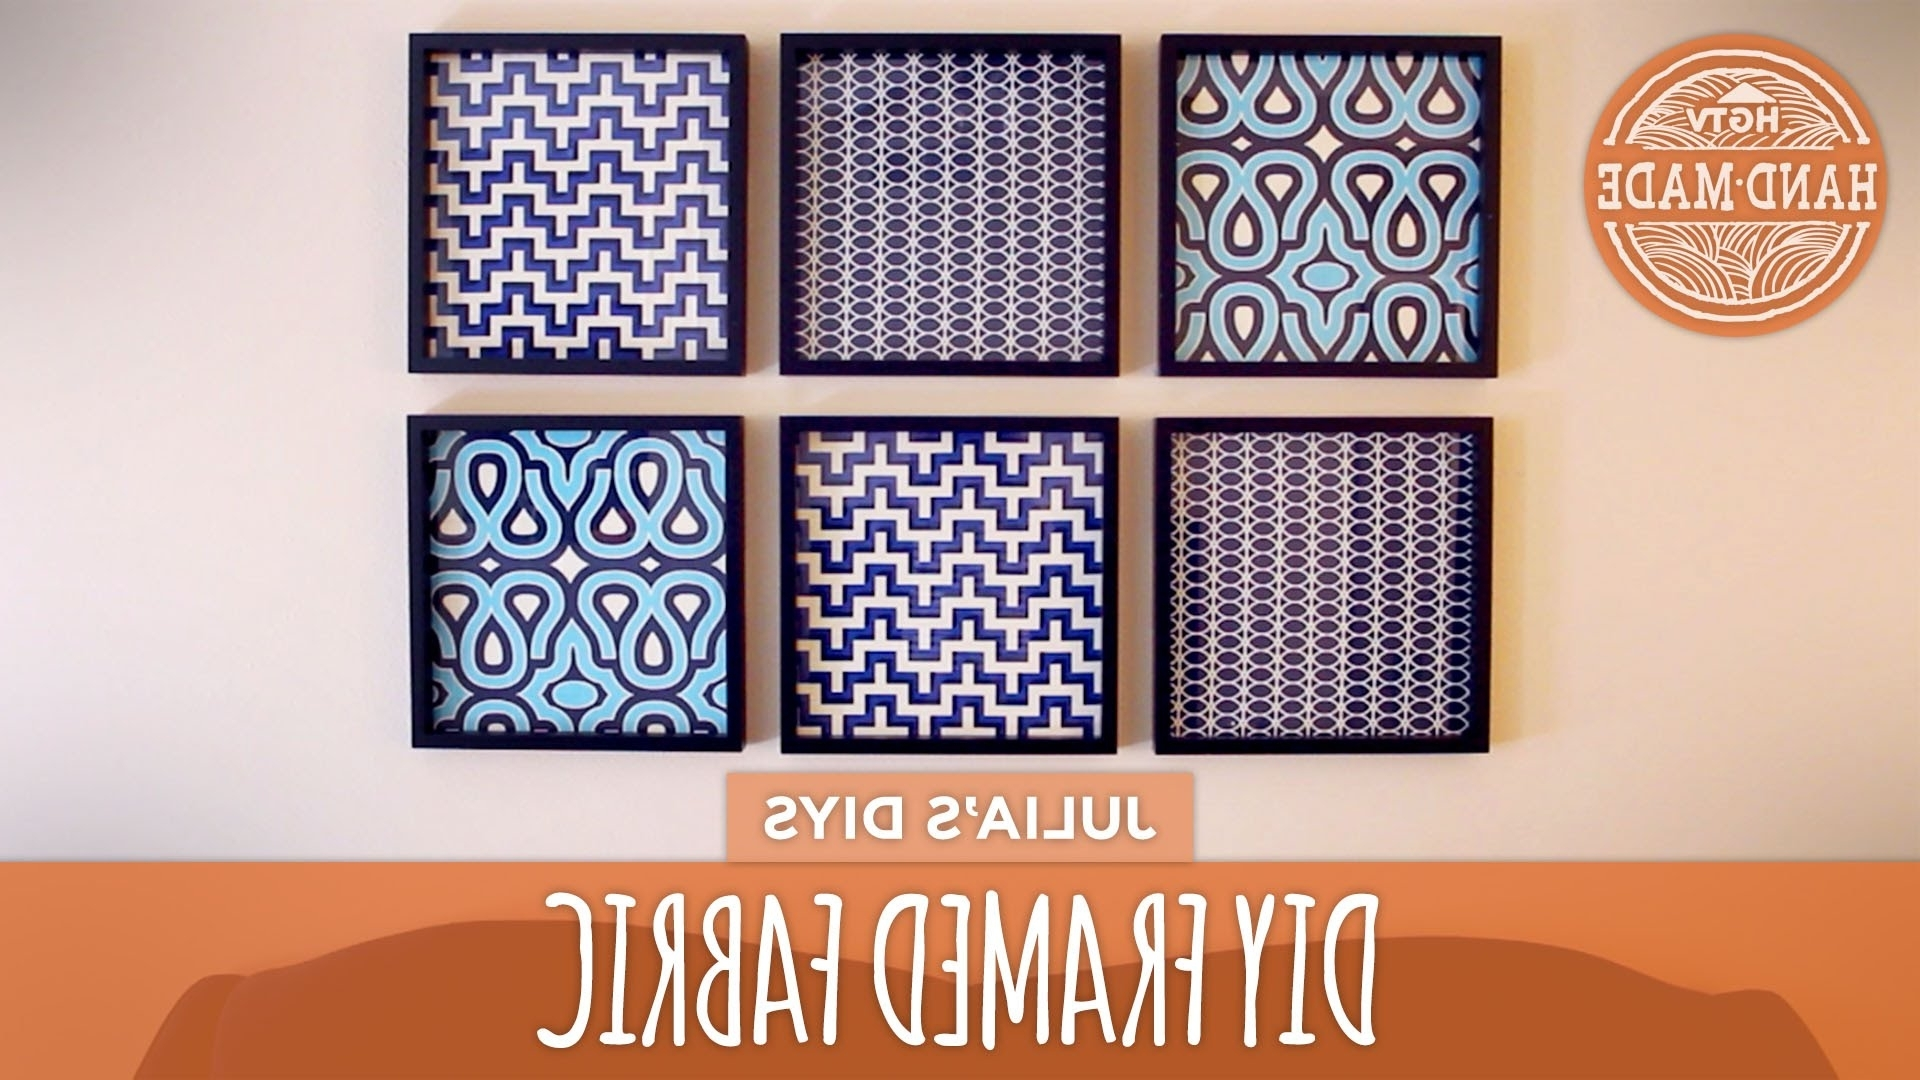 Diy Framed Fabric Gallery Wall – Hgtv Handmade – Youtube Throughout Favorite Cheap Fabric Wall Art (View 6 of 15)